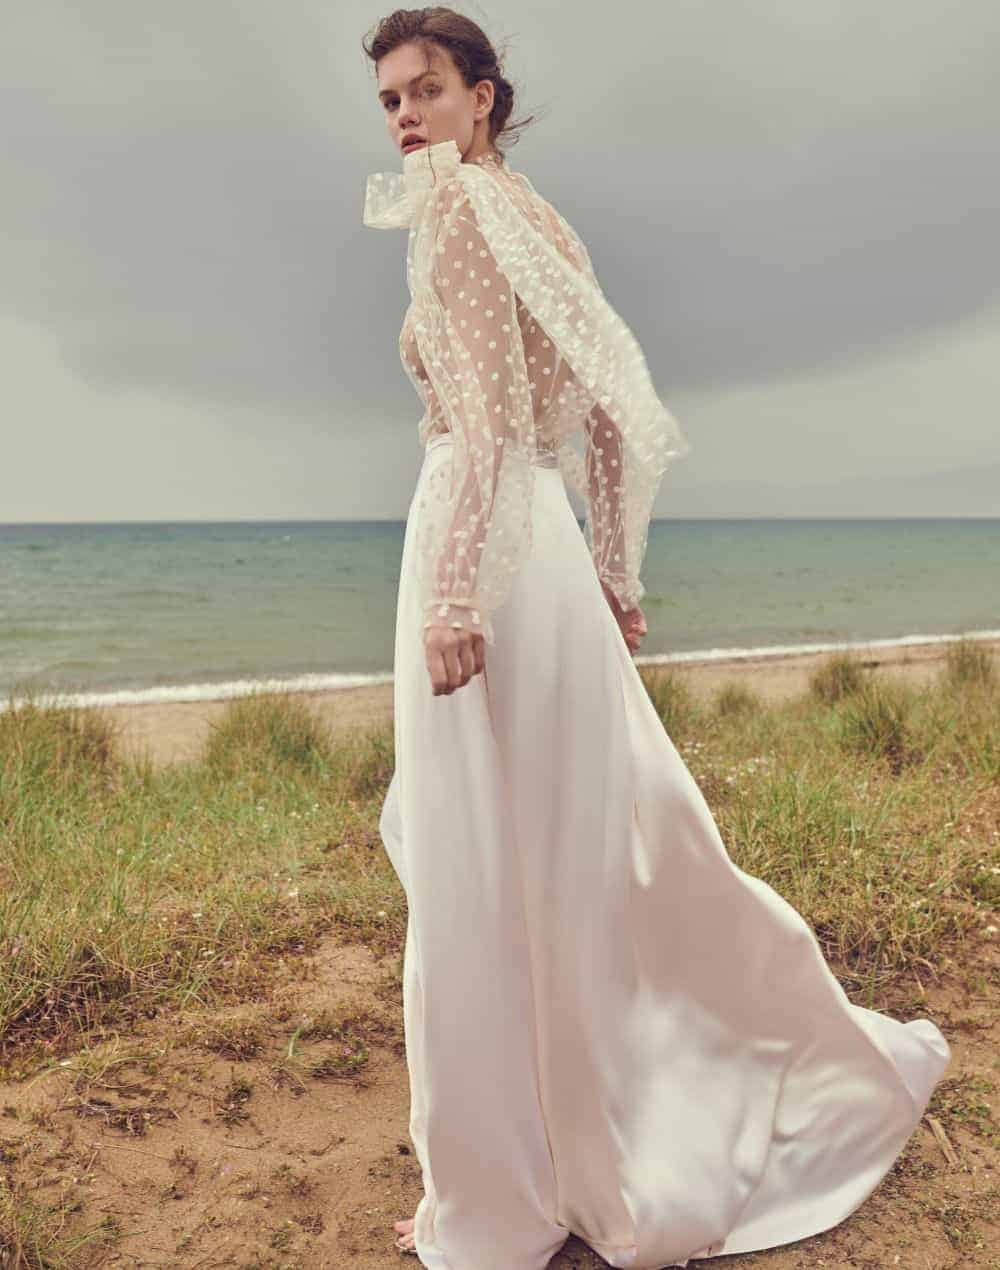 wedding dress with poua see-through top fabric and satin skirt by Costarellos